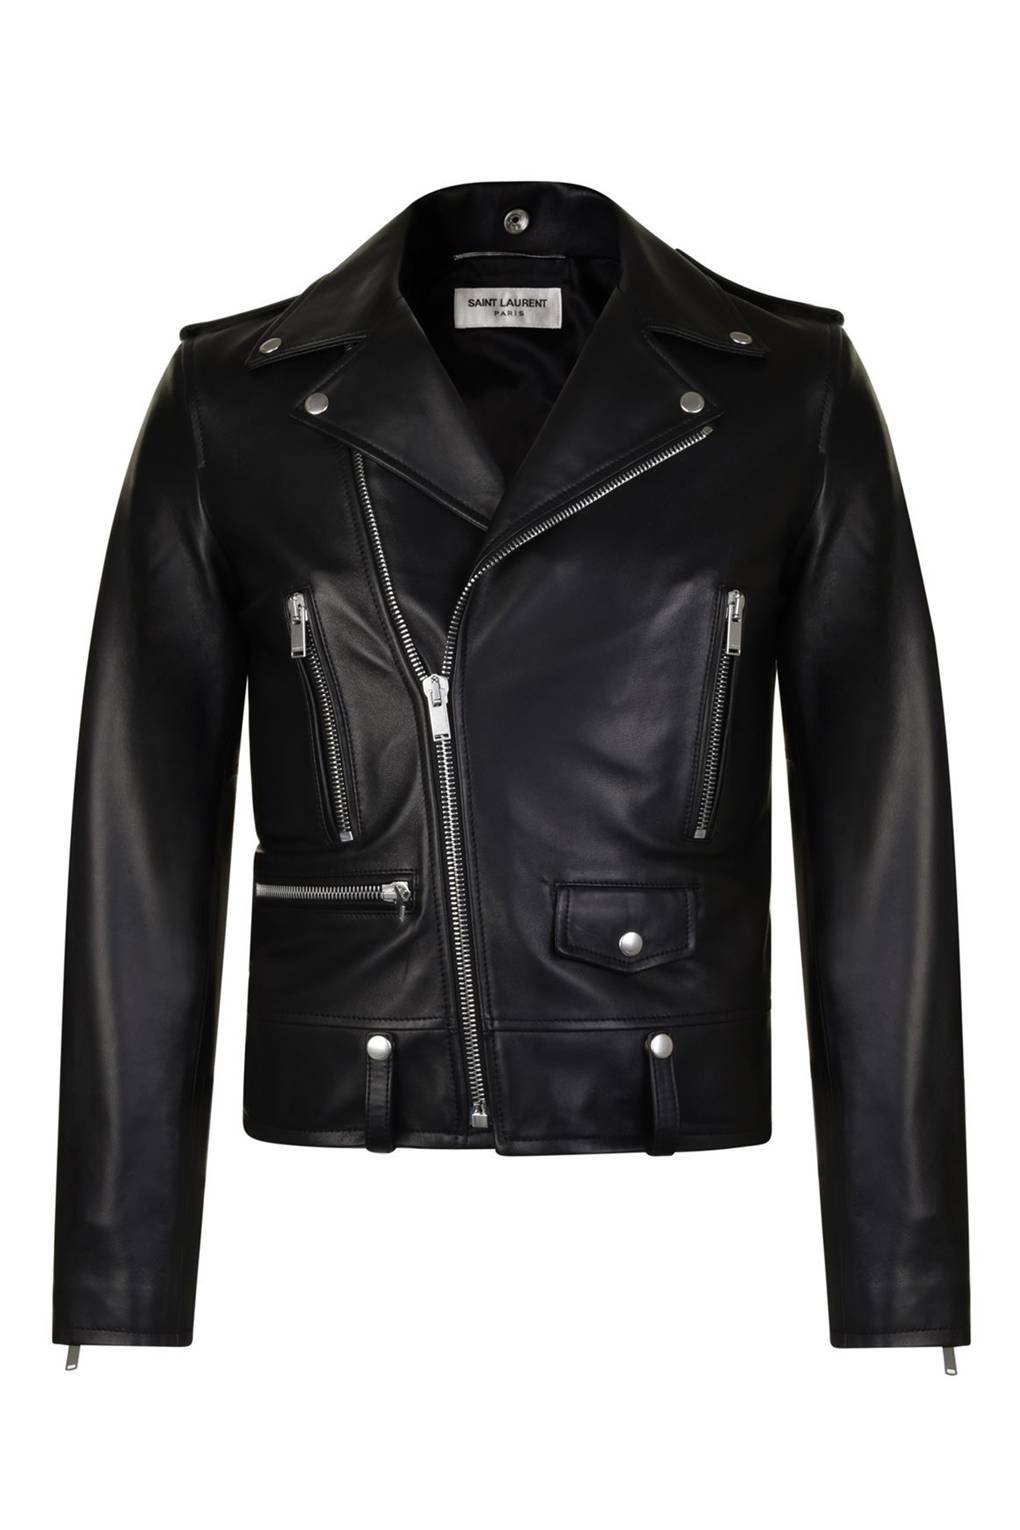 5b99d63aa41e Men s leather jackets  how to look good in leather